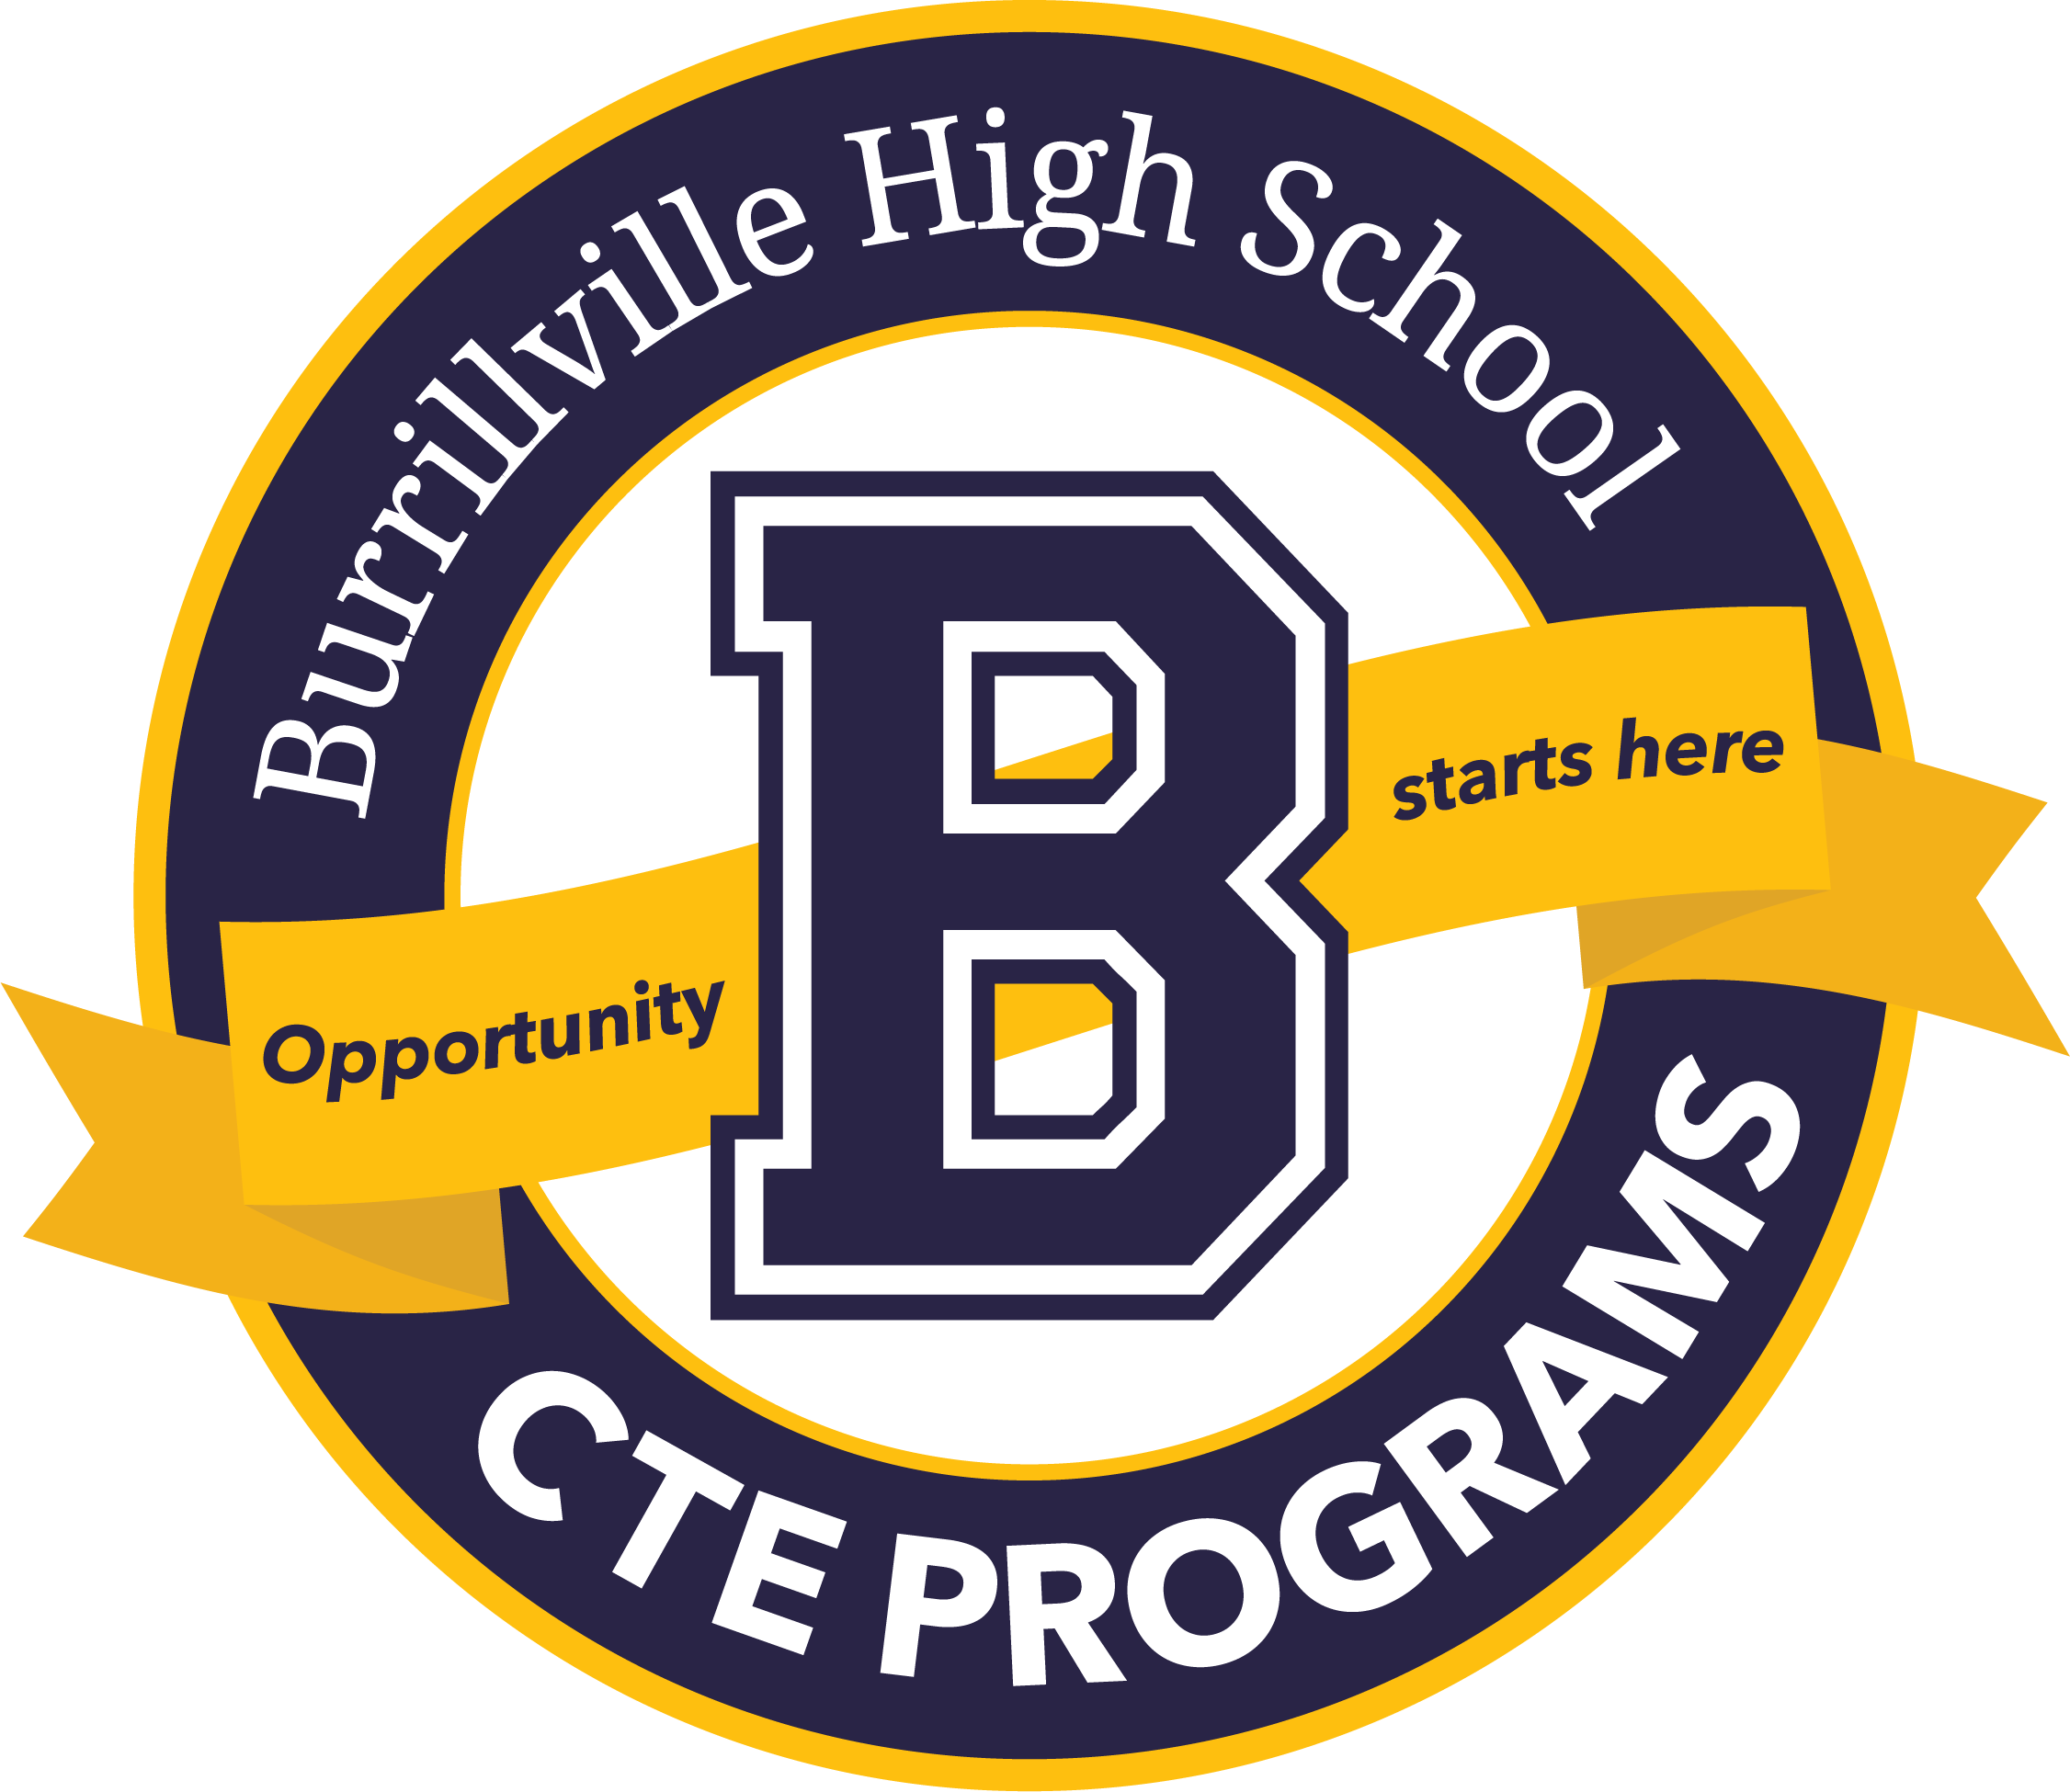 Burrillville High School CTE